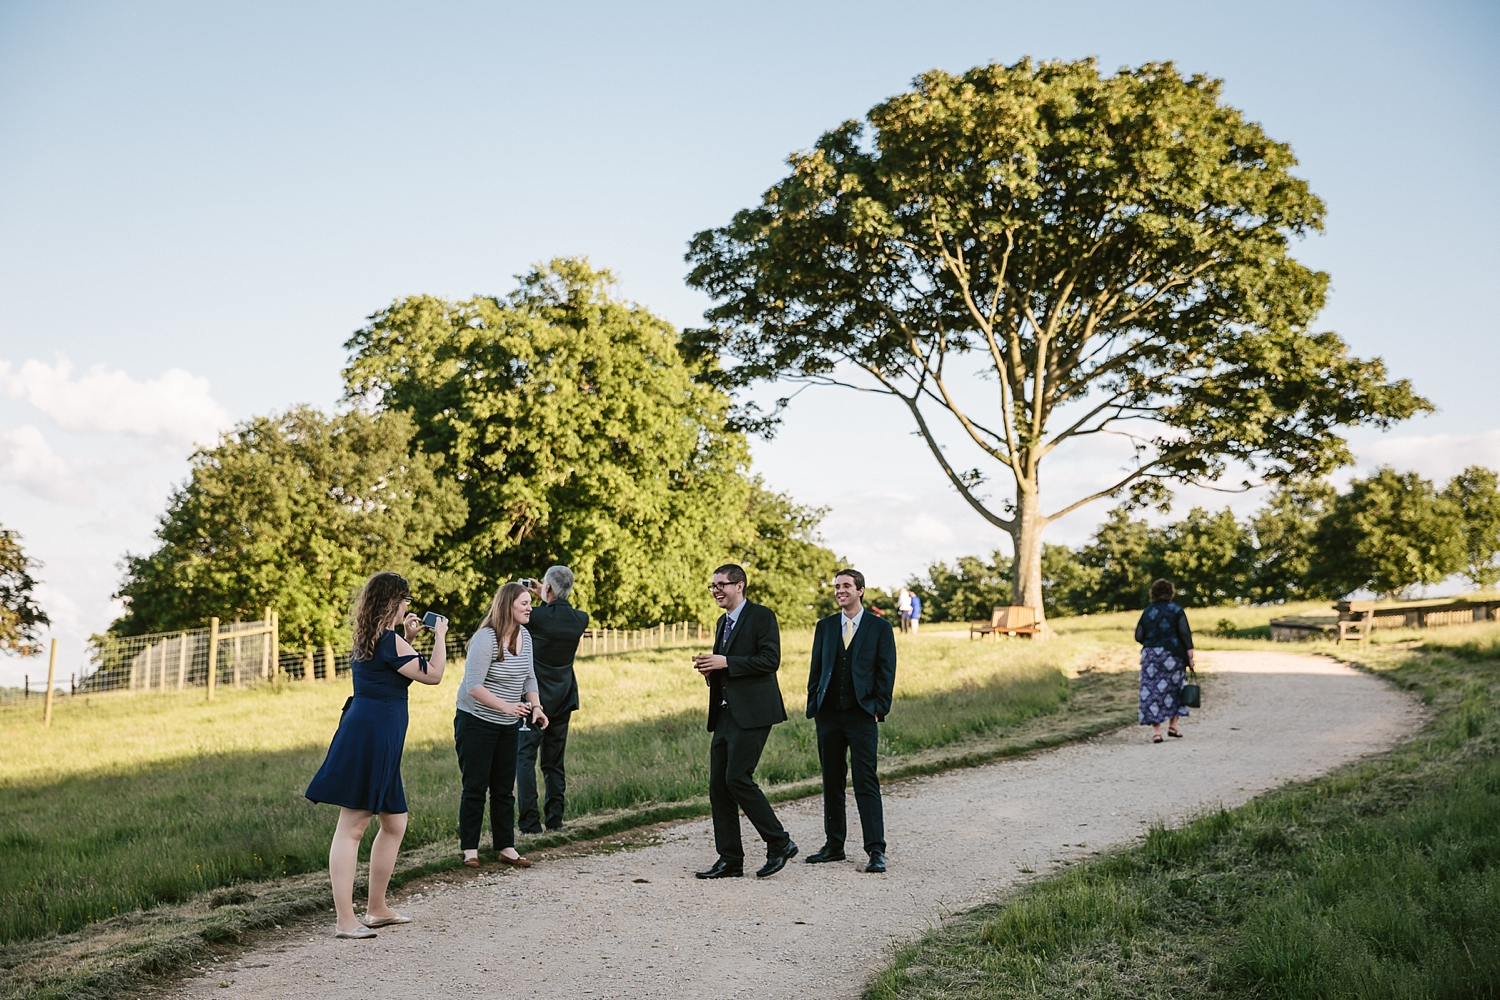 Natlie-Matthew-yorkshire-natural-relaxed-fun-documentary-reportage-candid-wedding-photography-photographer-Derby-Nottingham-Derbyshire-Nottinghamshire-Leicestershire-Lincolnshire-East-Midlands-80.jpg